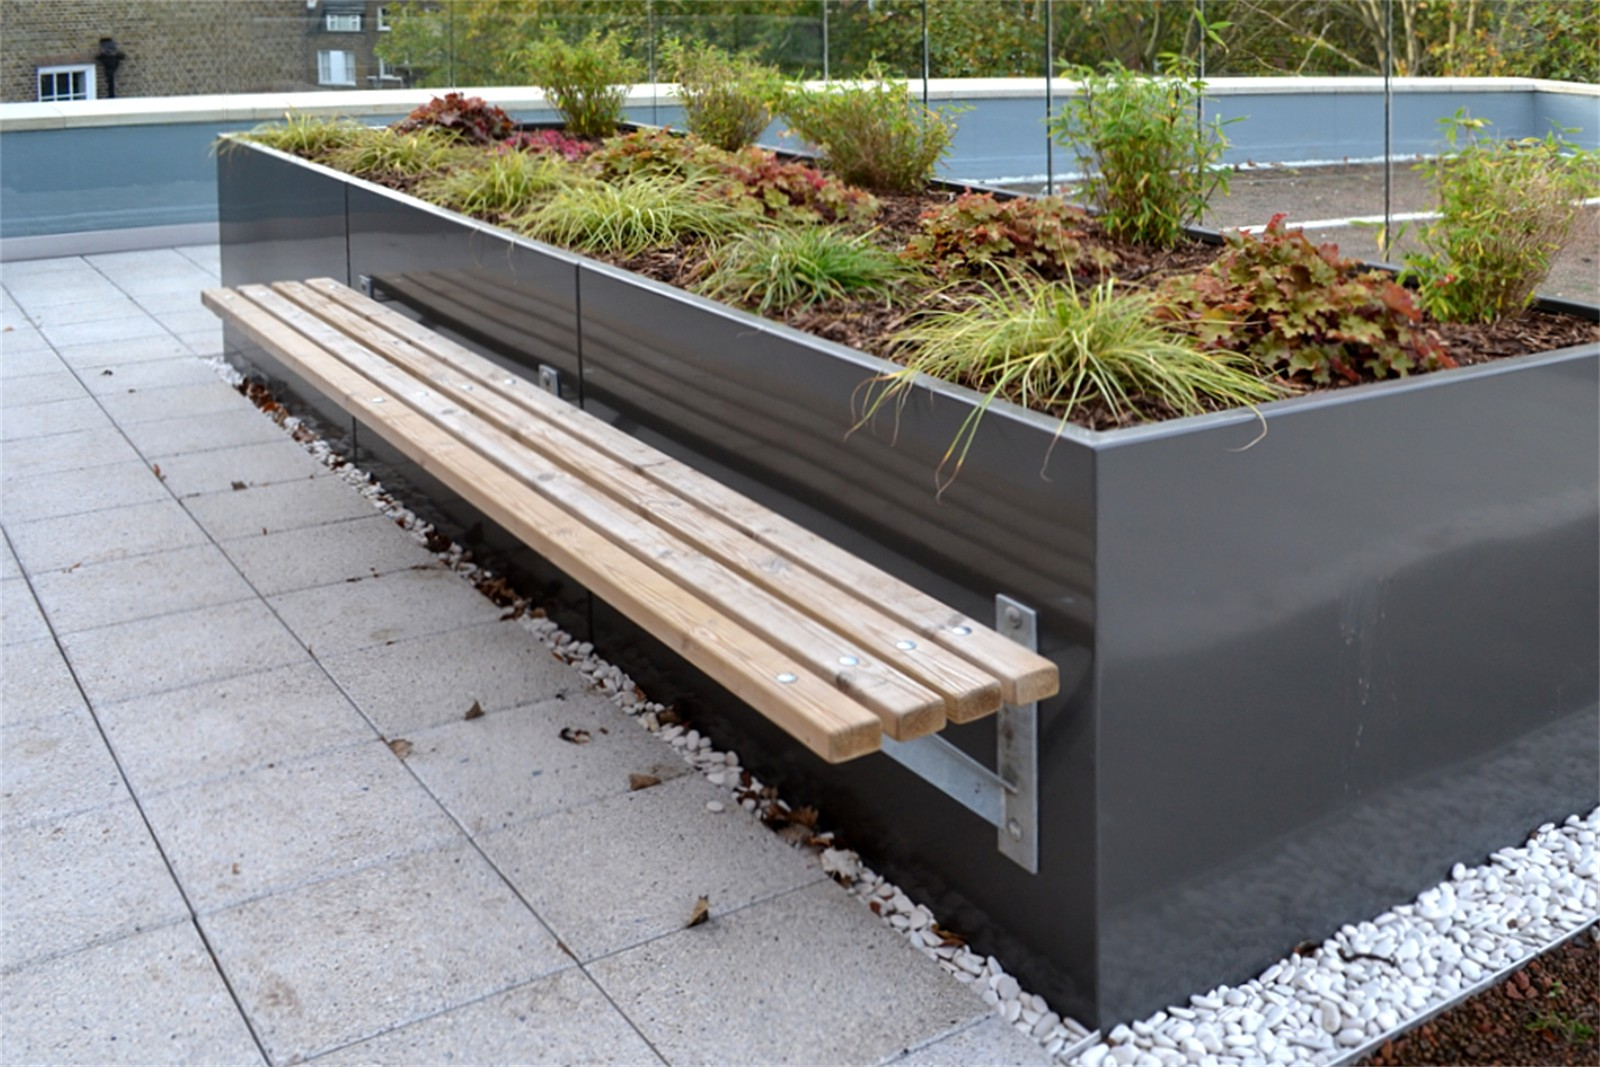 70sbe12 - Bexley side fixed planter bench